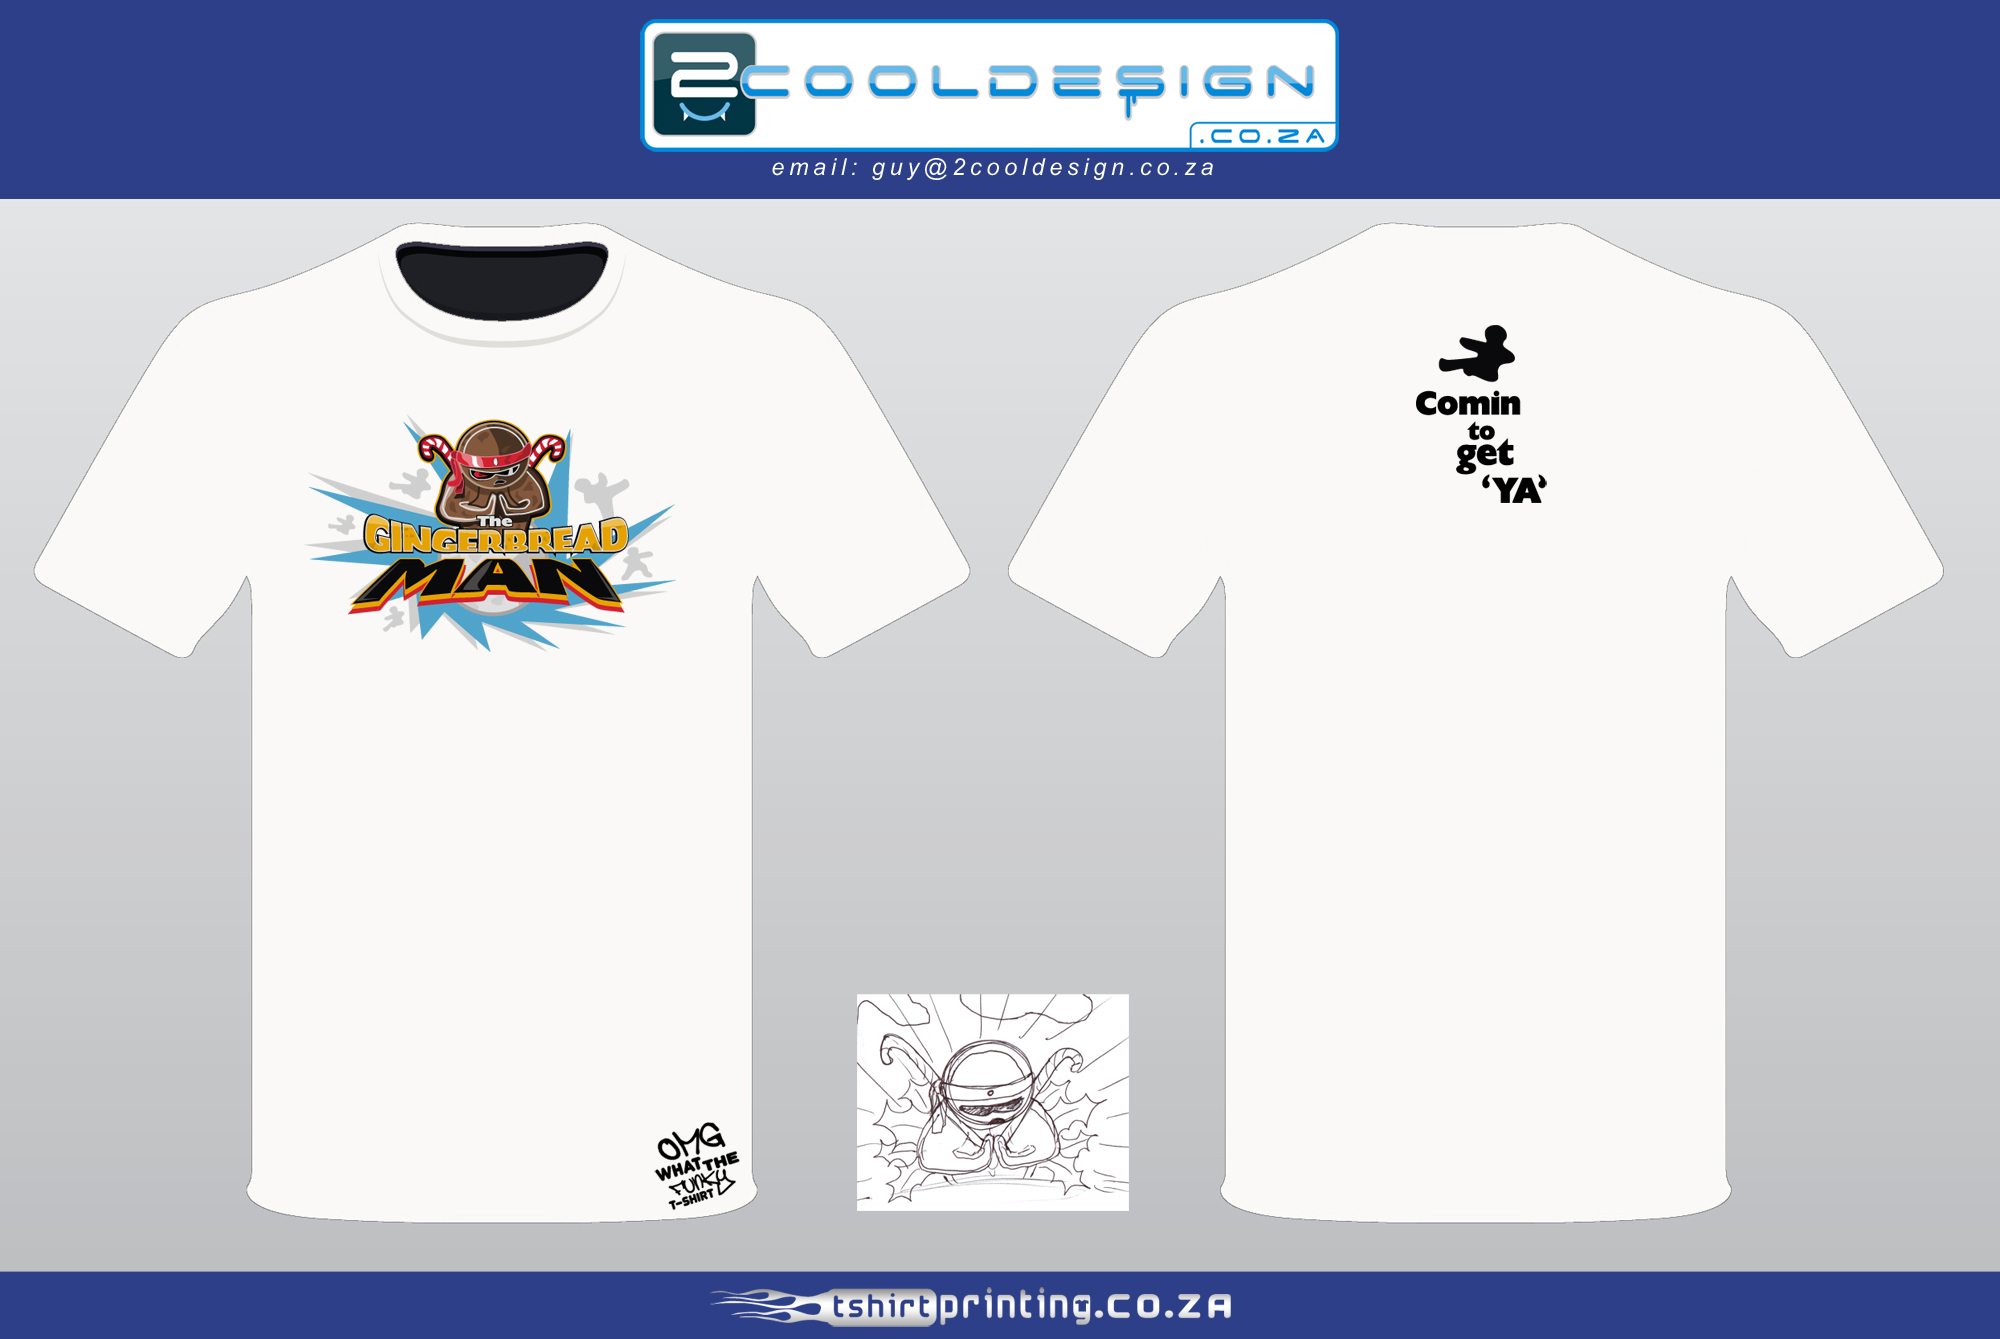 Cool t shirt design gingerbread man ninja t shirt by guy for T shirt printing design online